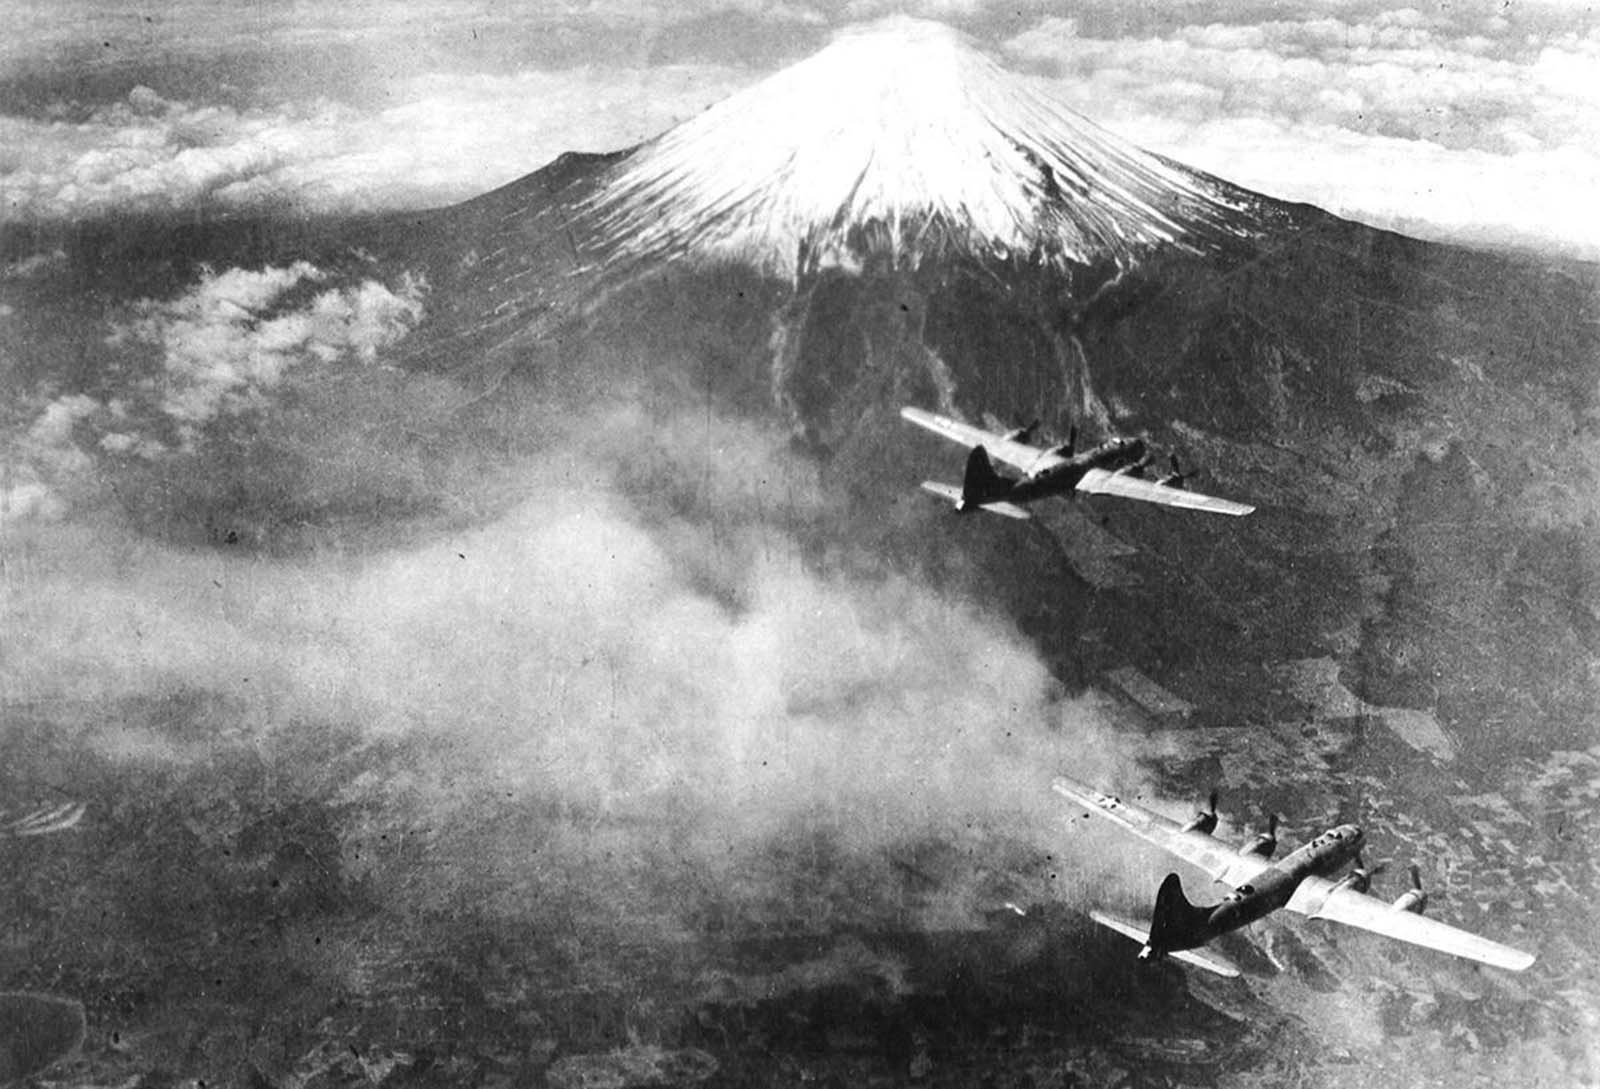 A formation of Boeing B-29 Superfortresses of the 73rd Bomb Wing fly over Mt. Fuji, Japan in 1945.